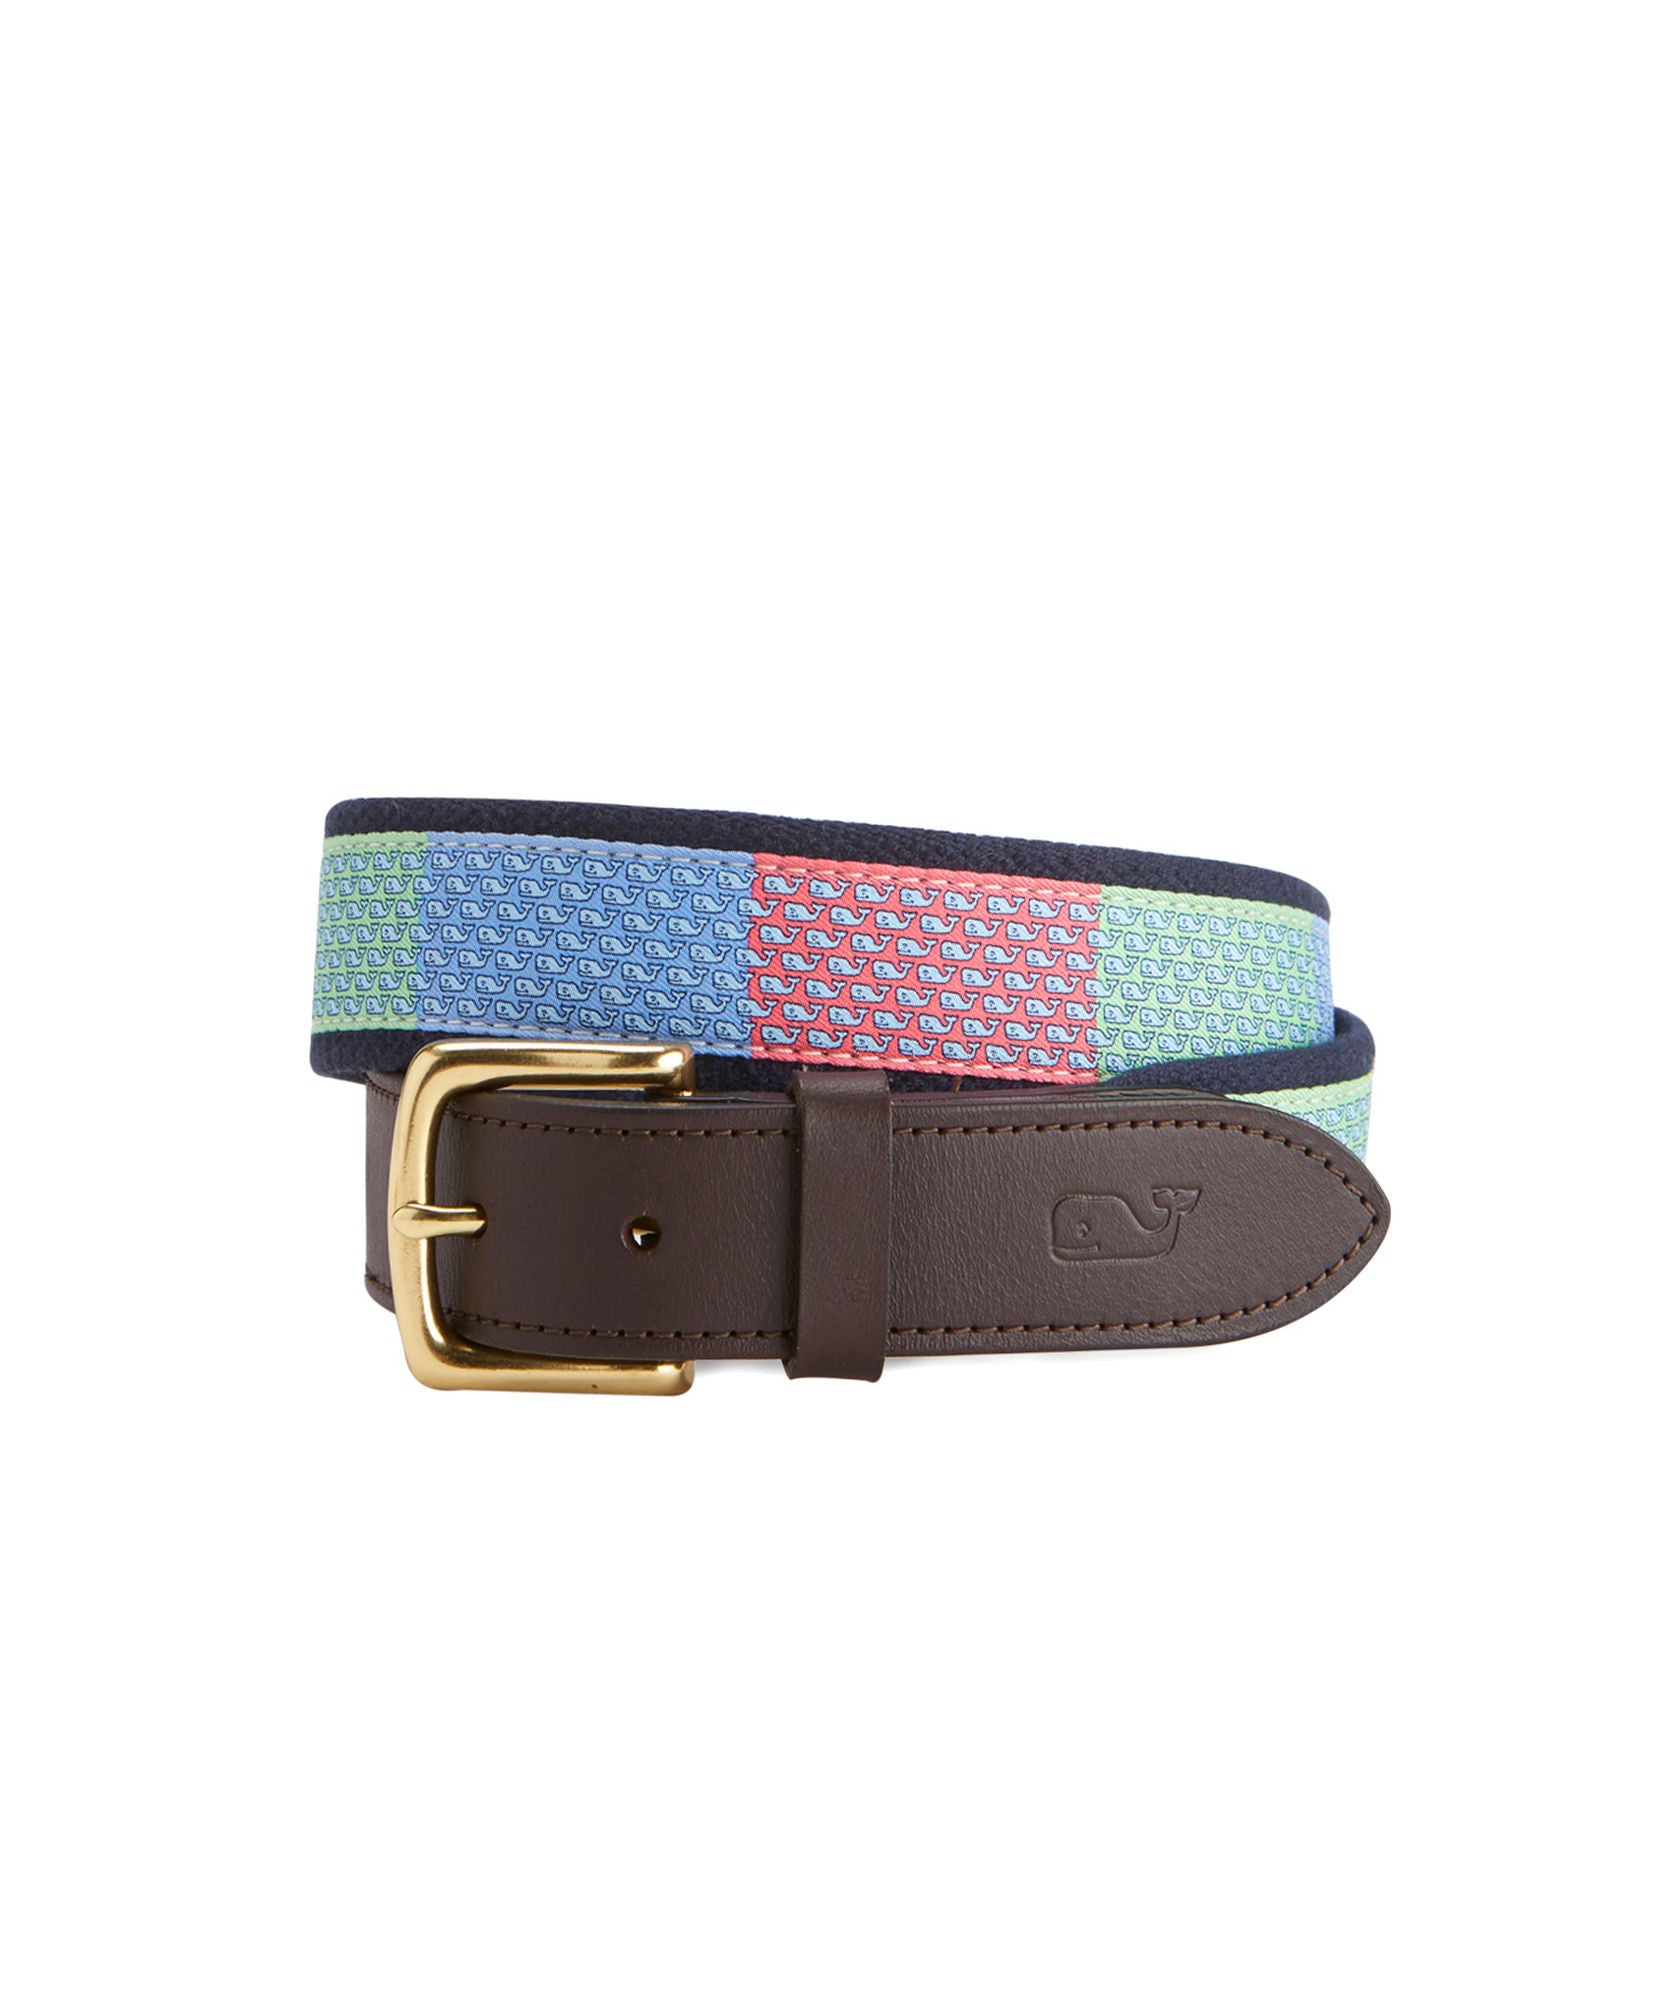 Vineyard Vines Vineyard Whale Patchwork Canvas Club Belt - Multi